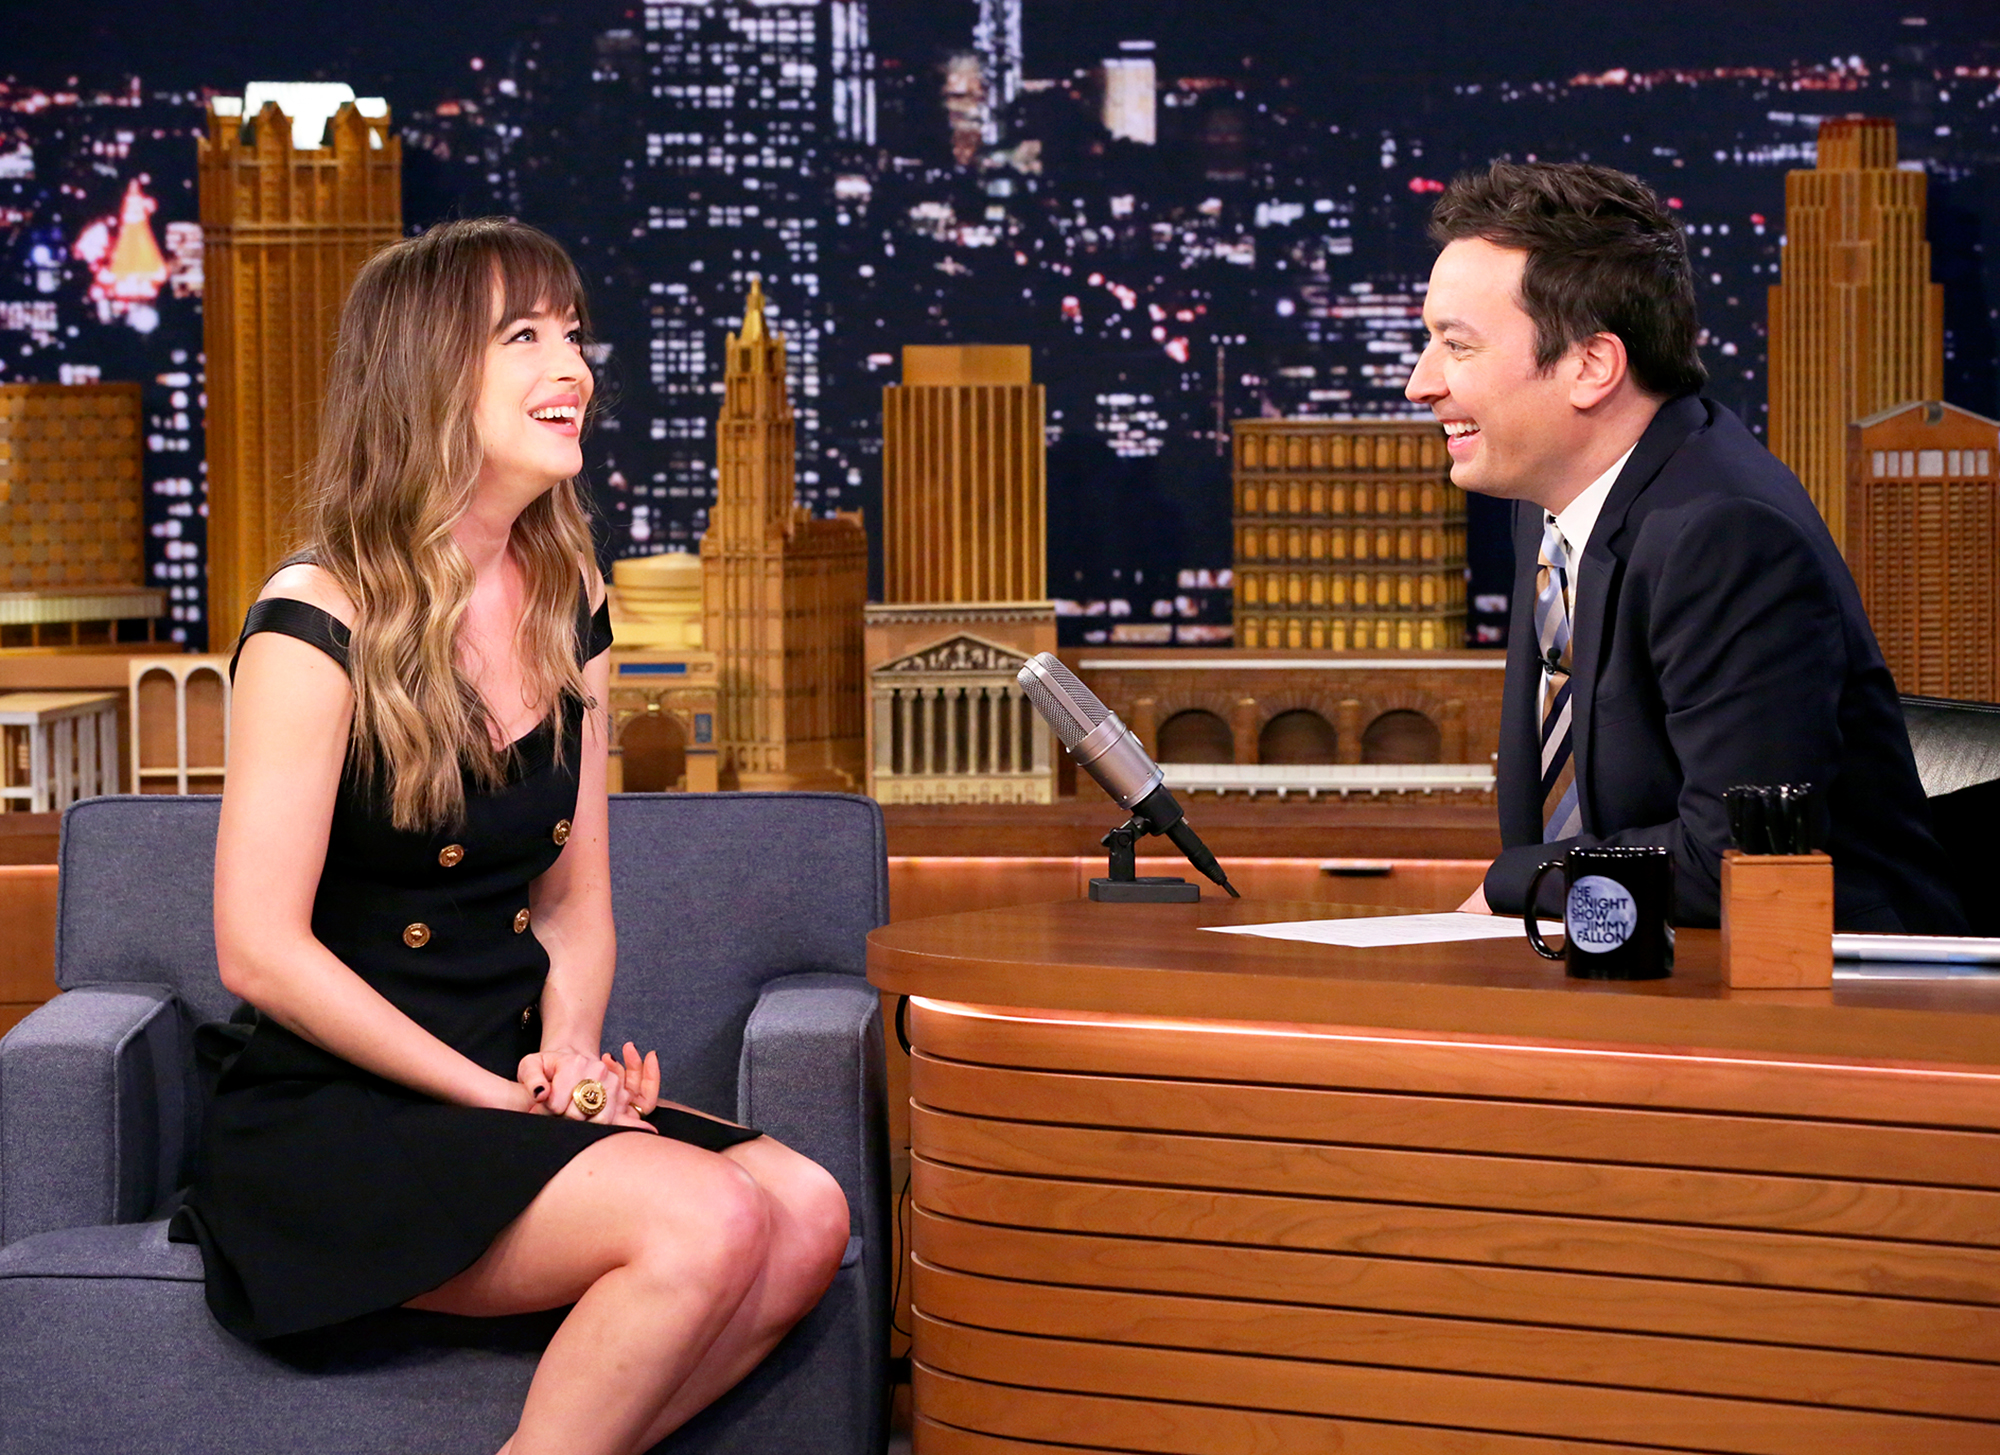 Dakota Johnson insists she wasn't staring at Angelina Jolie at Golden Globes